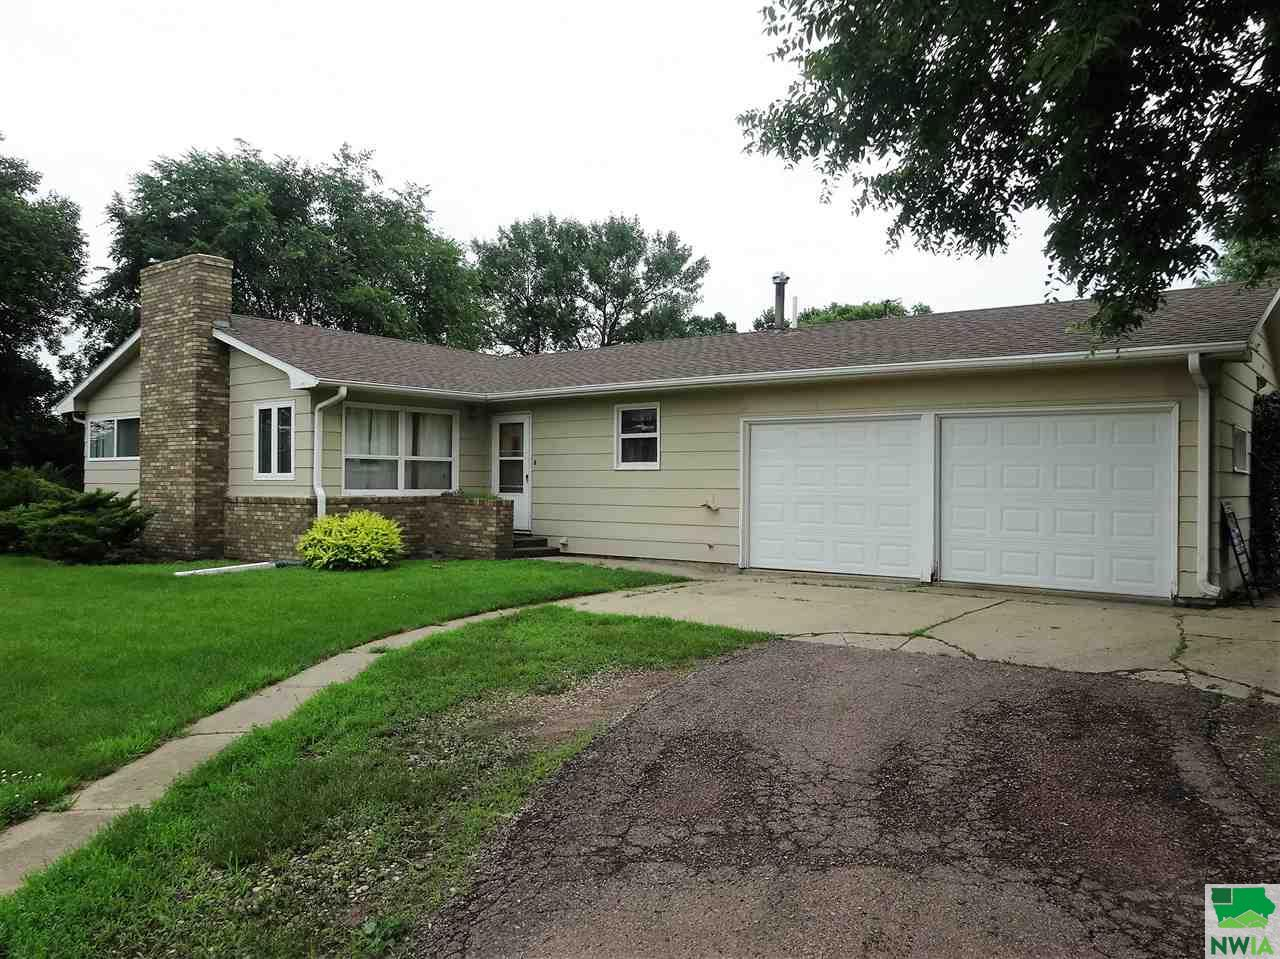 Property for sale at 1909 N University, Vermillion,  SD 57069